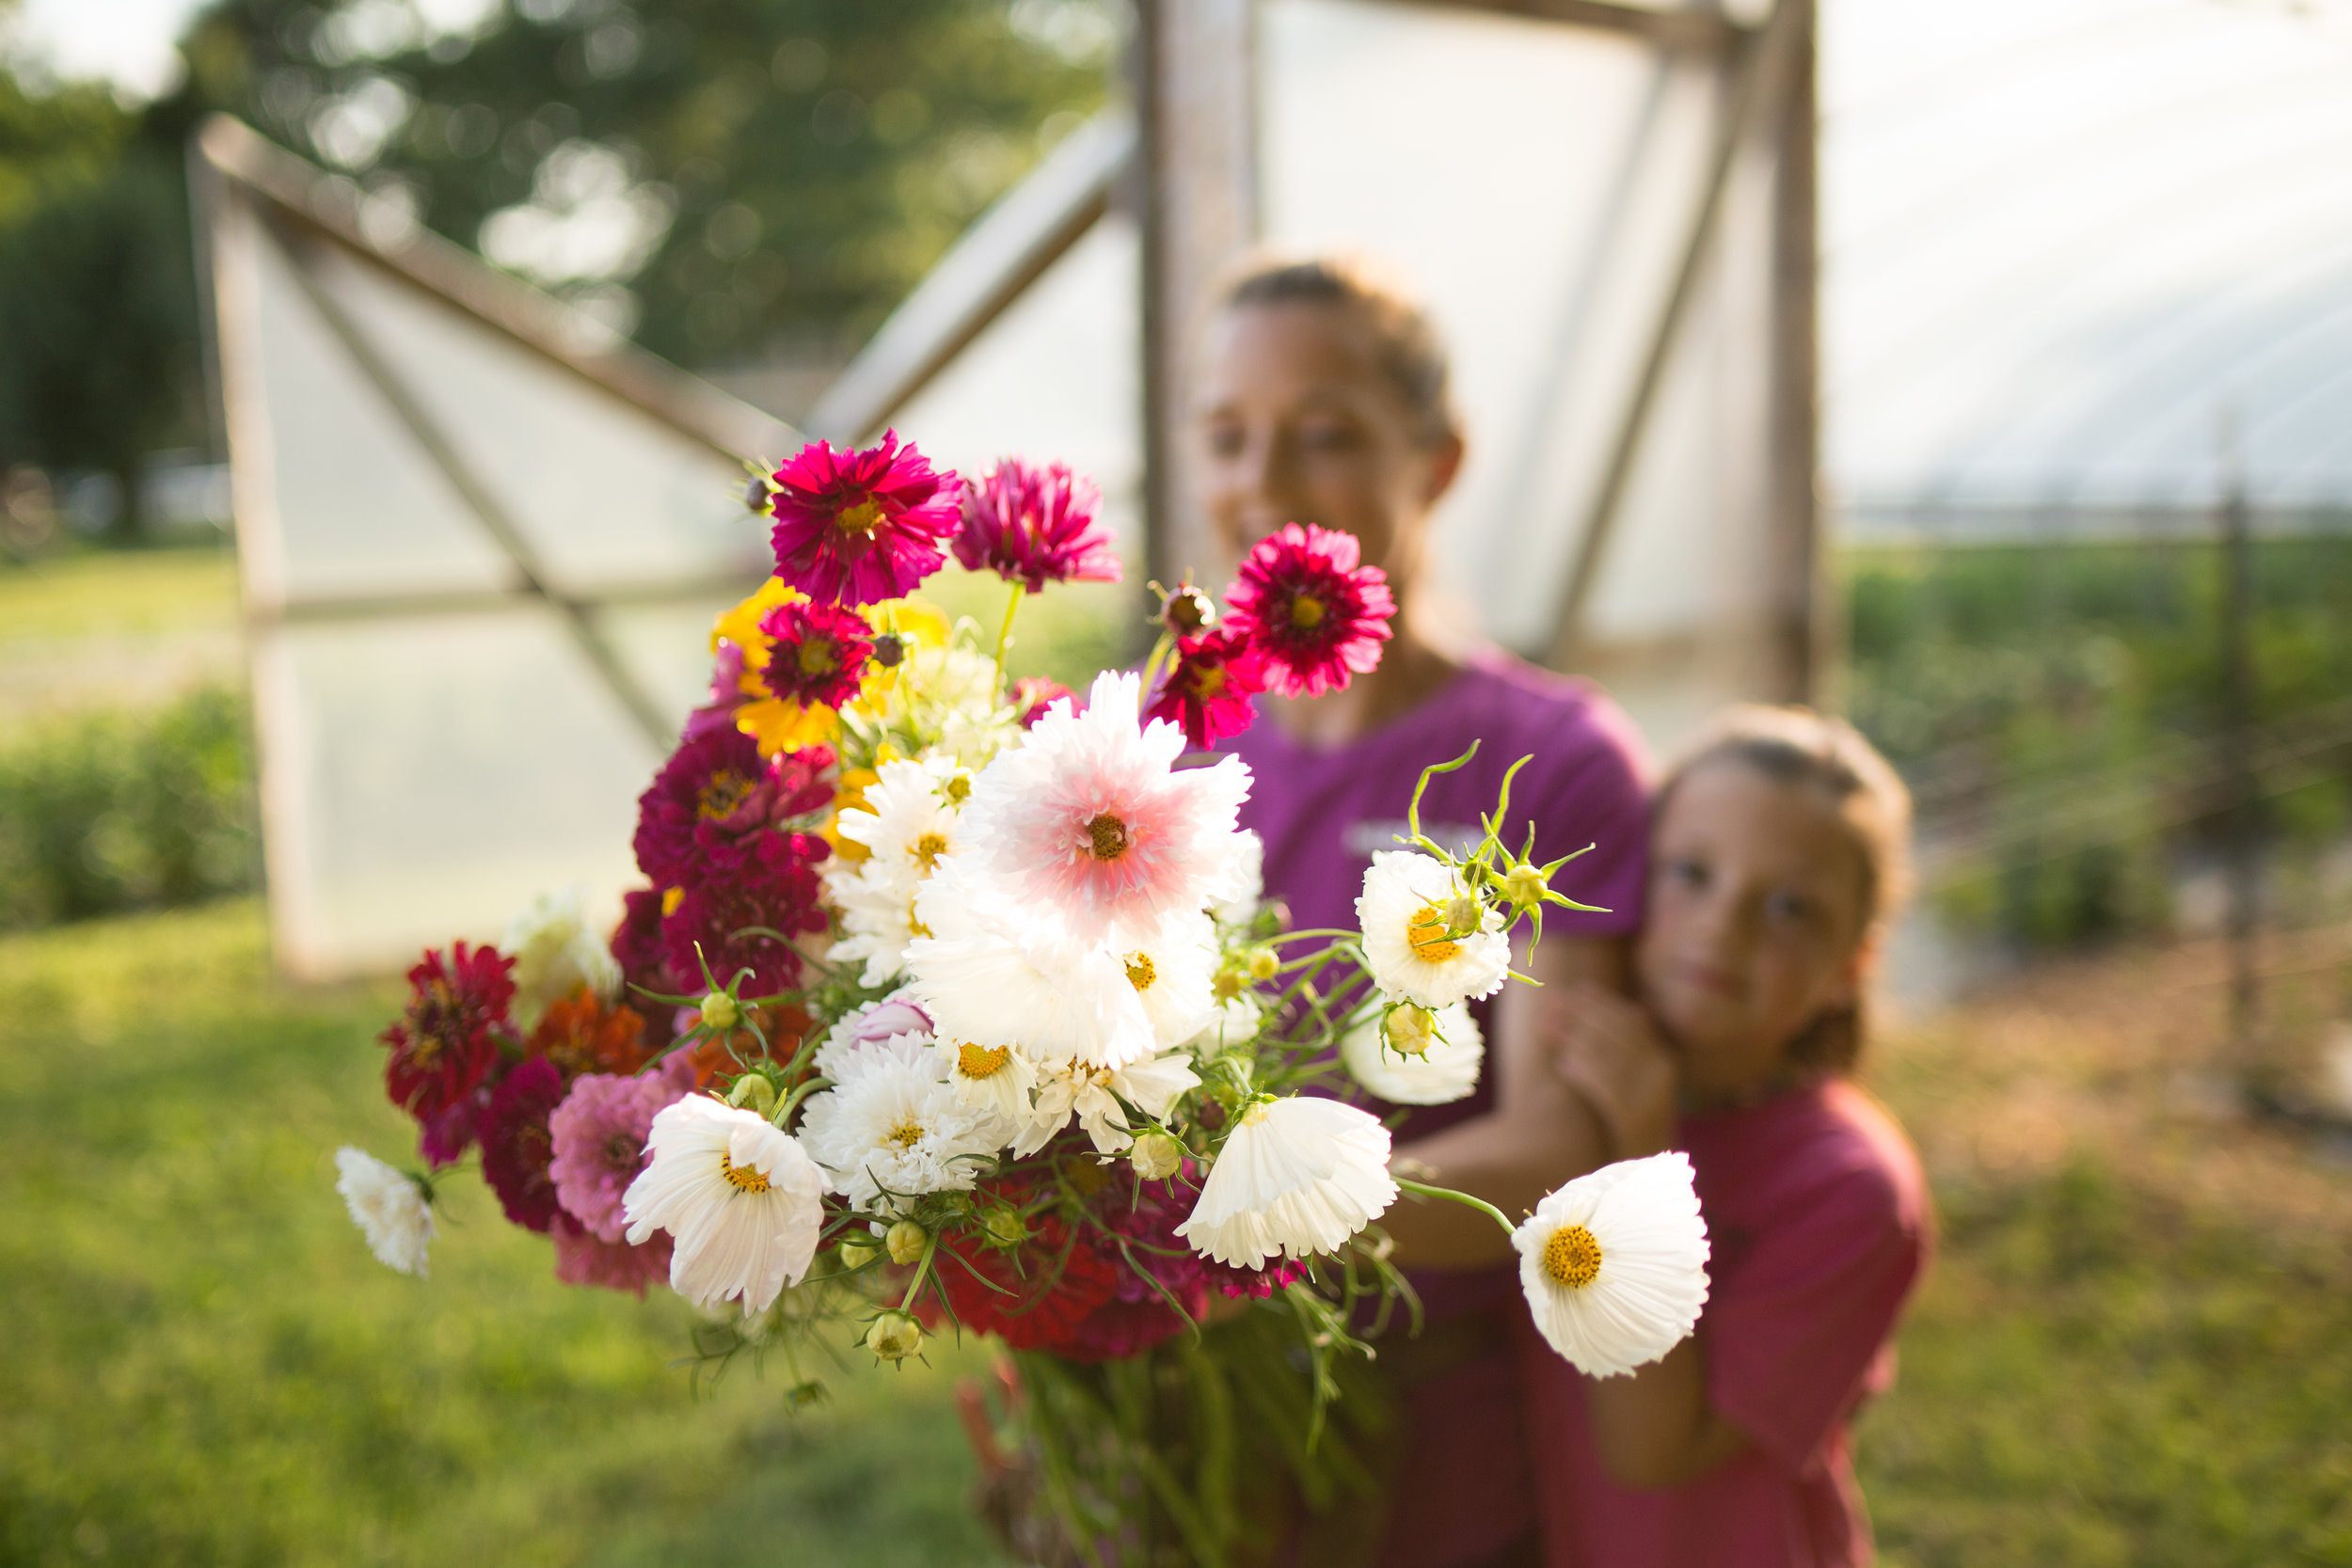 Organic Specialty Cut flowers grown in harford county MD